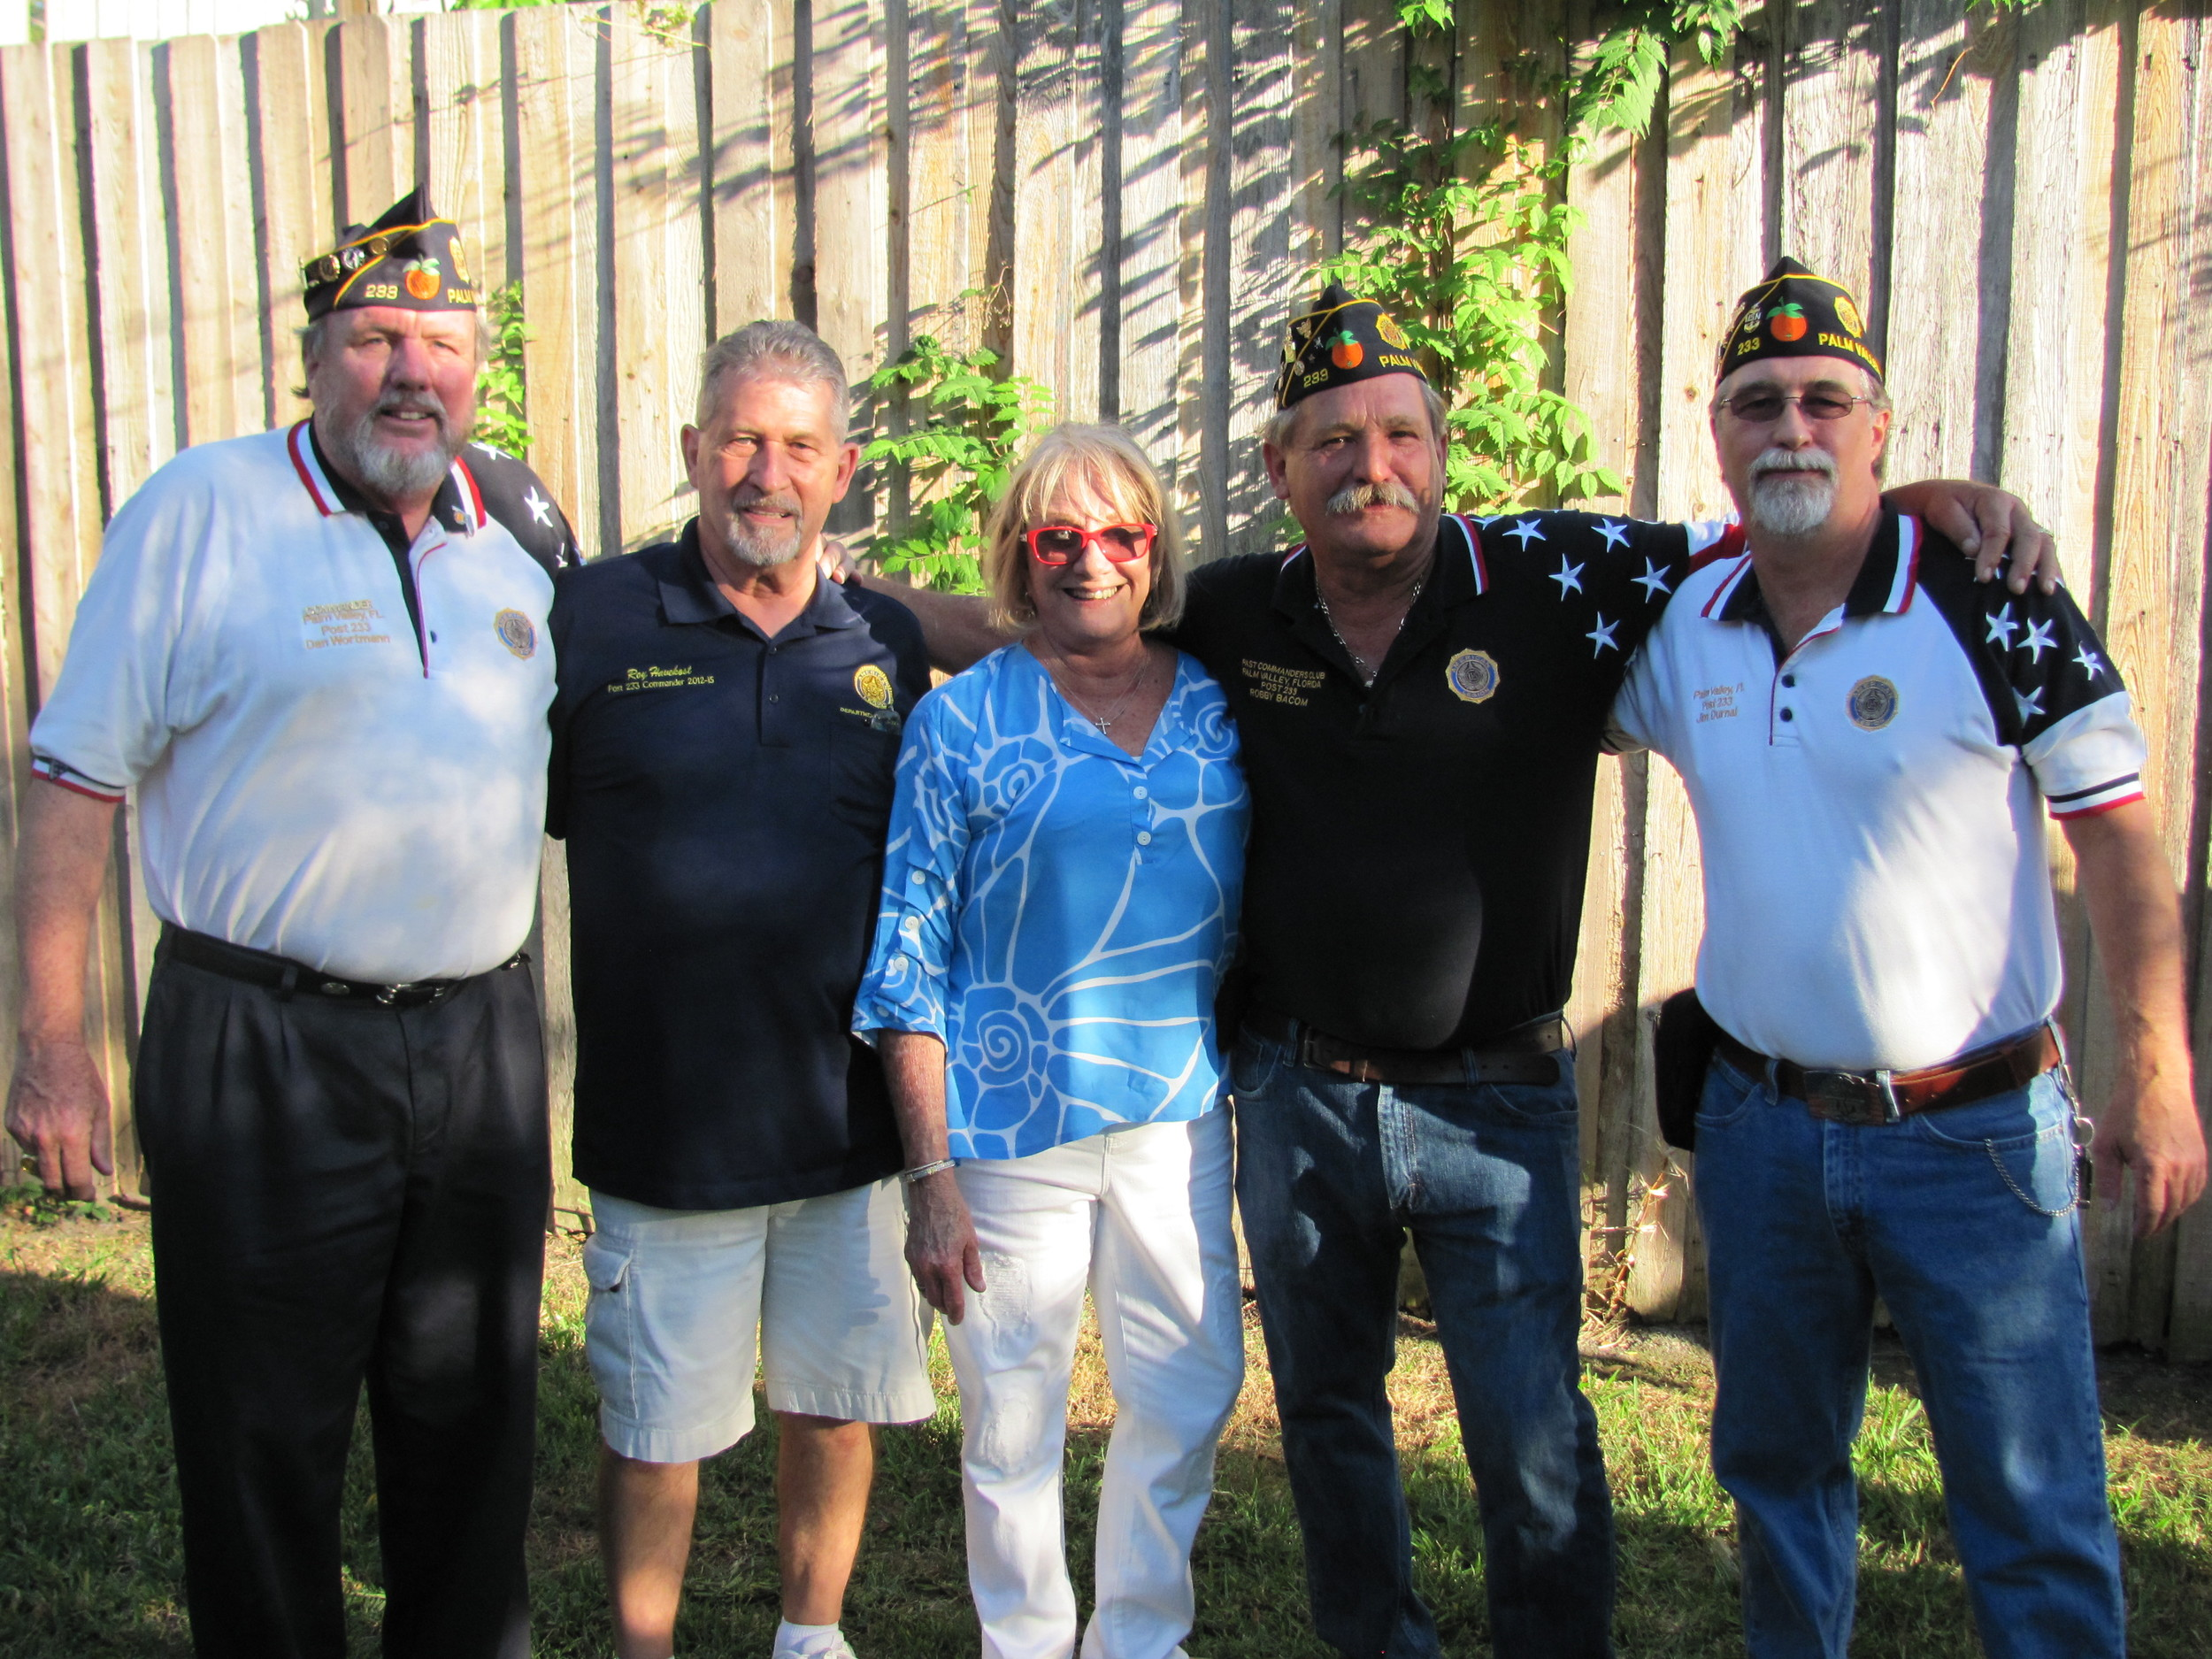 K9s For Warriors Founder Shari Duval (center) with American Legion Post 233 representatives Dan Wortman, Roy Havekost, Robby Bacom and Jim DurnalIf space permits: